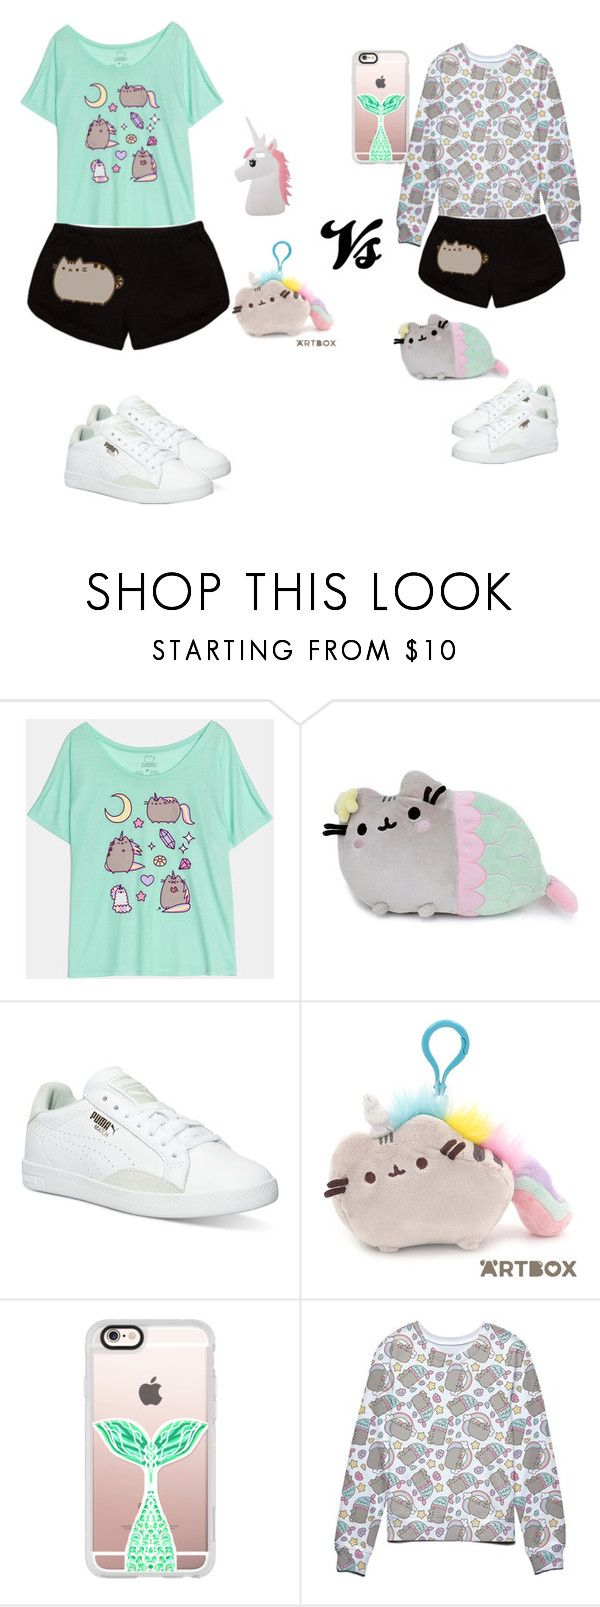 Unicorn pusheen vs mermaid pusheen! by beautykittycat16 ❤ liked on Polyvore featuring Pusheen, Puma, Casetify and Miss Selfridge